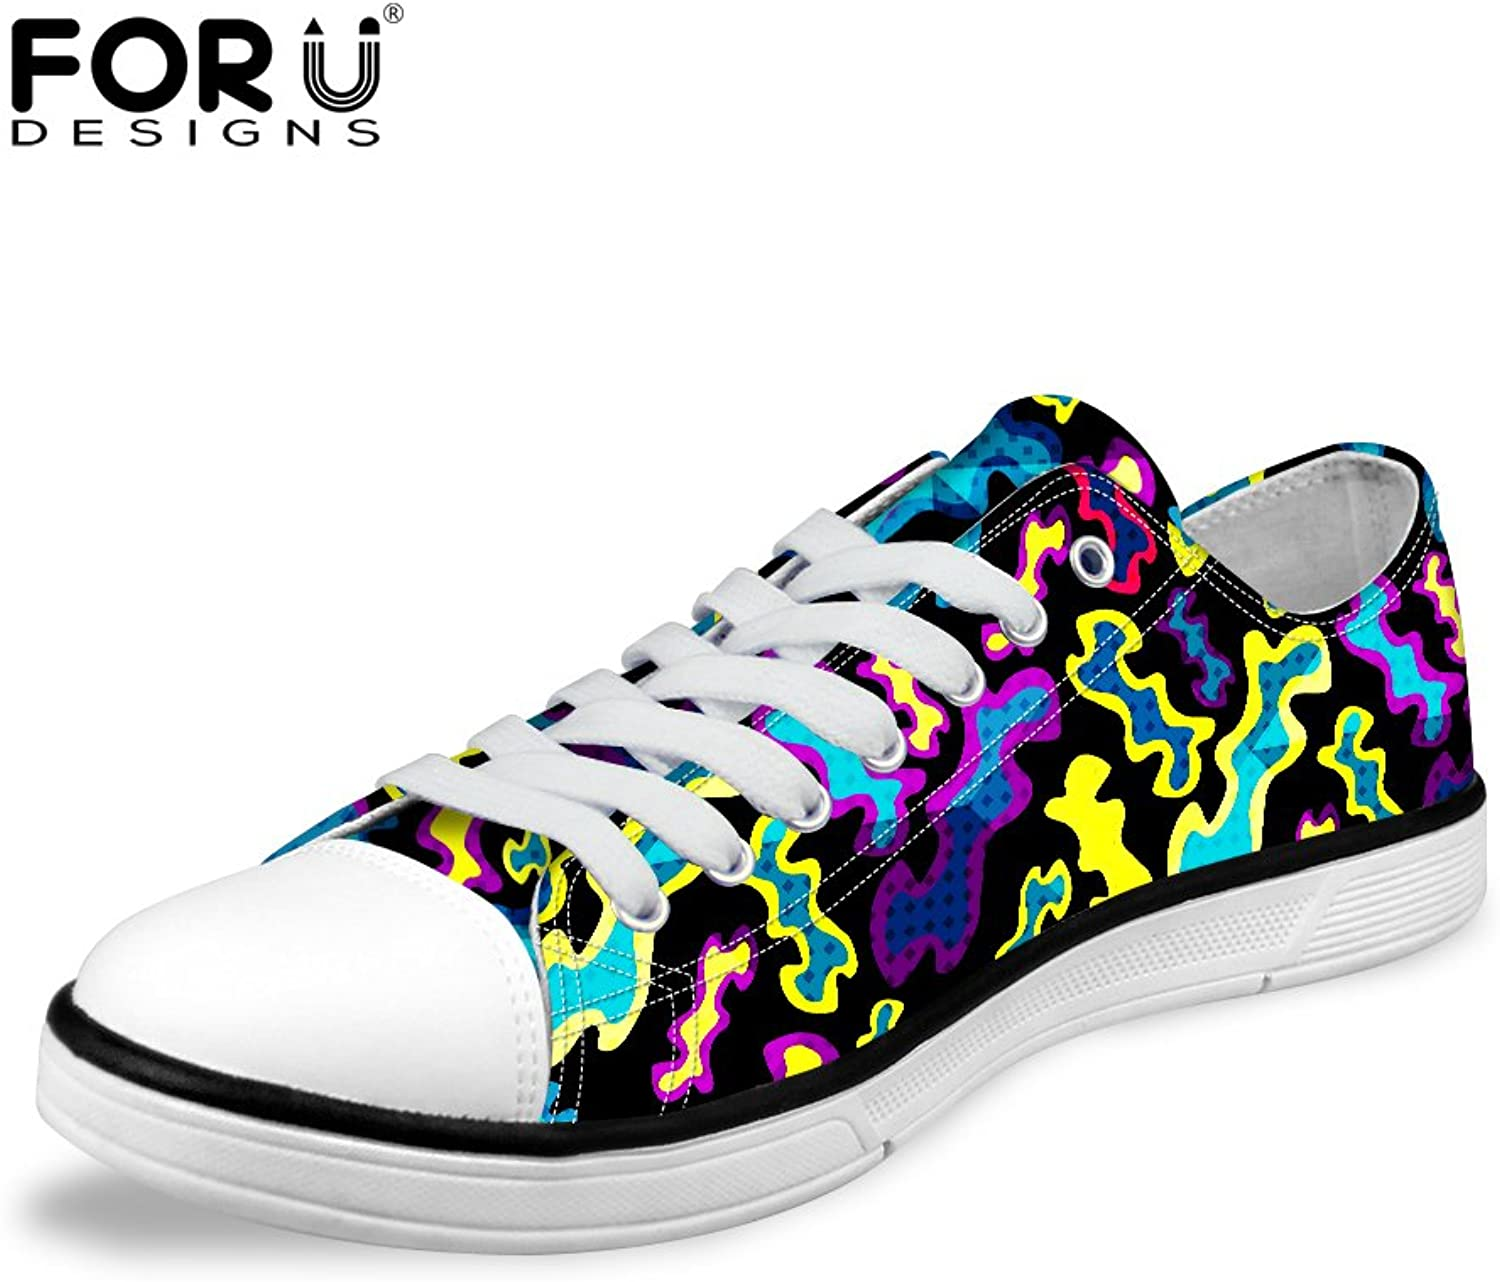 FOR U DESIGNS Stylish Glitter Women Low Top Lace-Up Comfort Canvas Trail Sneaker US 8